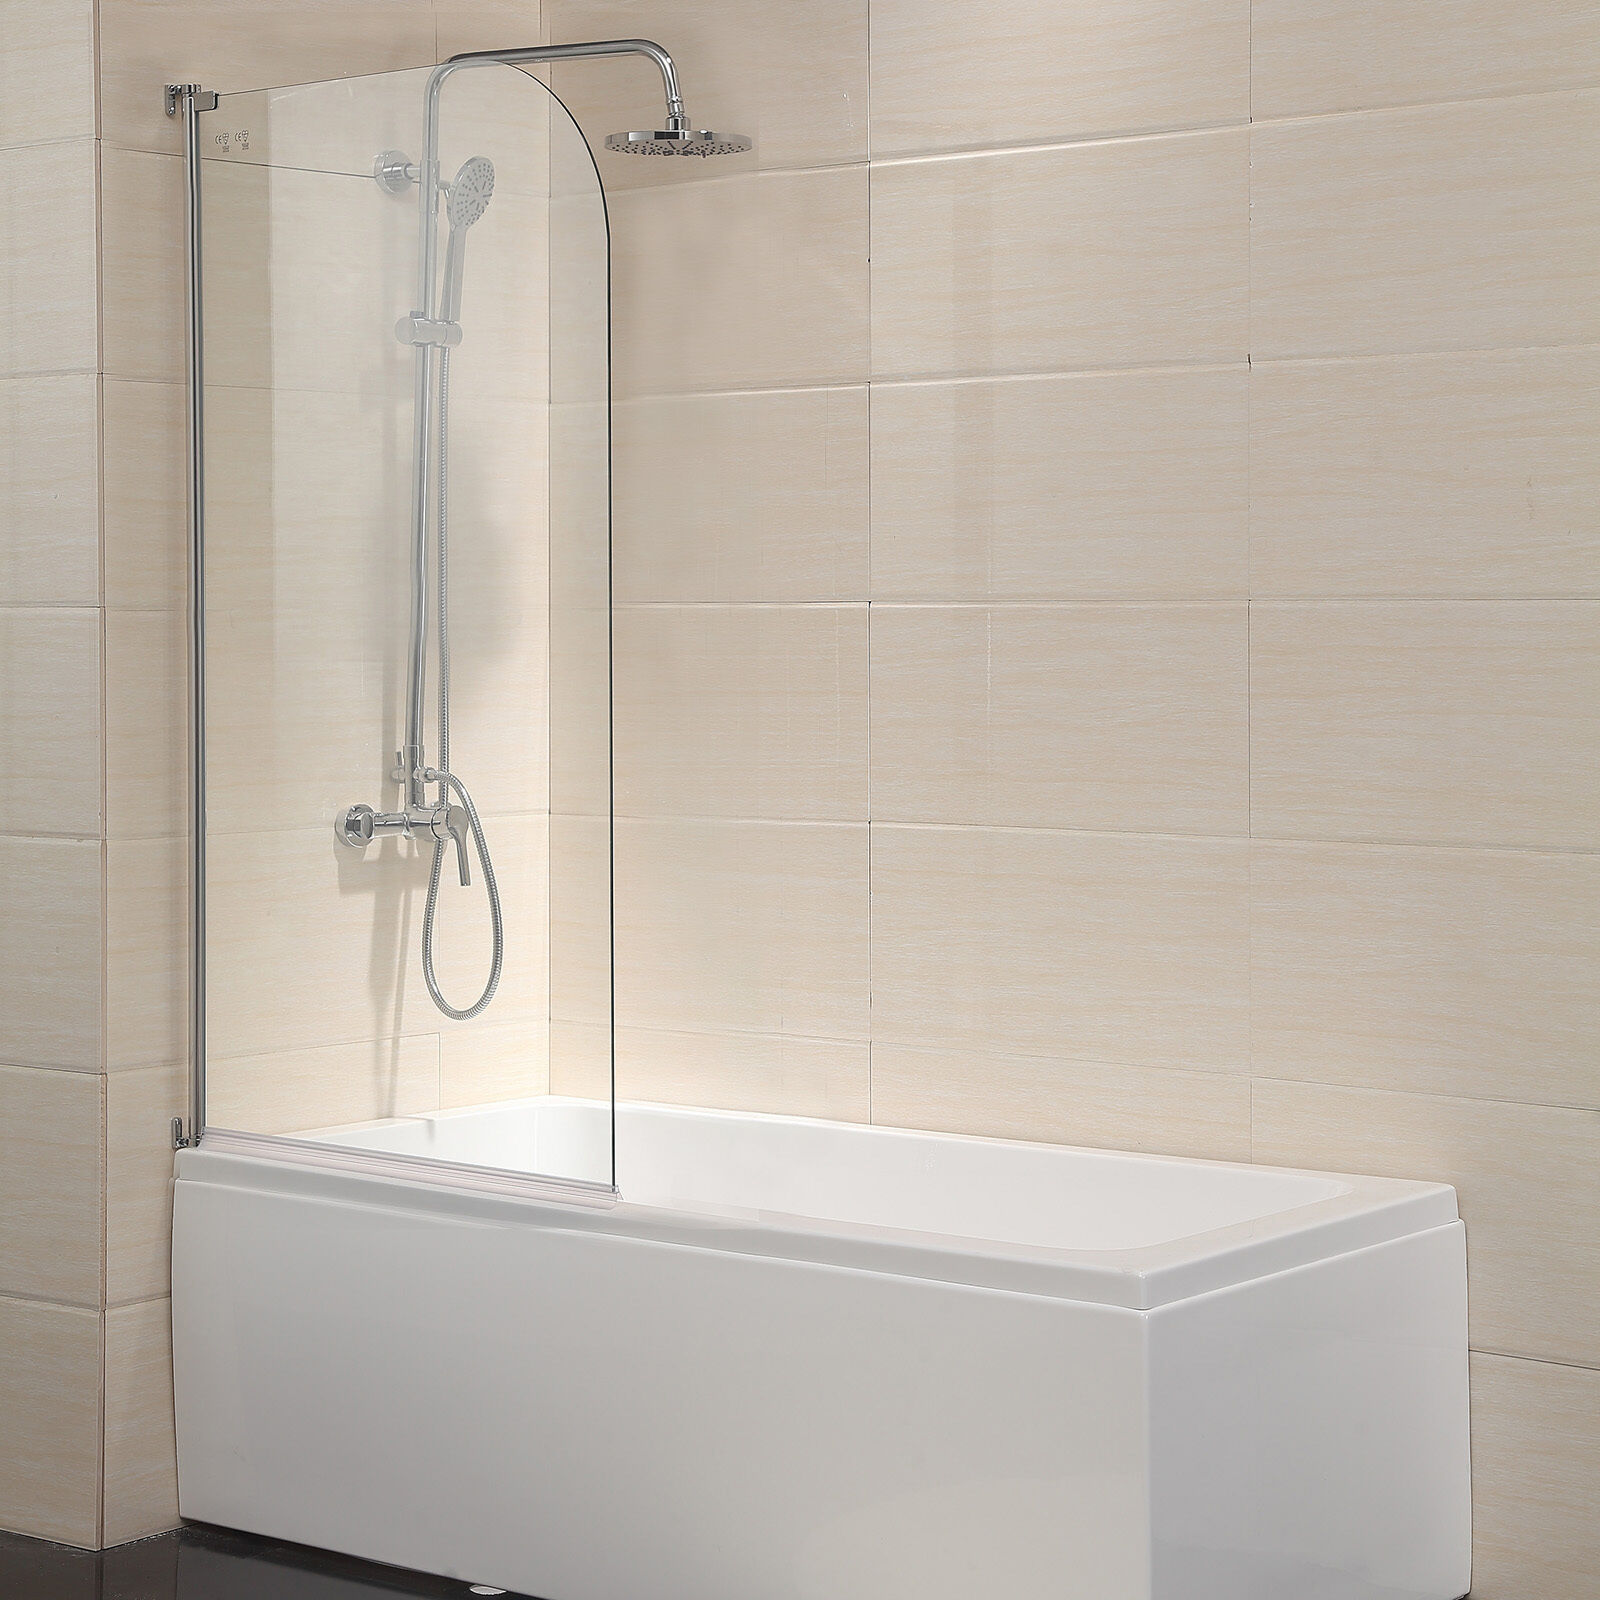 55x31 Glass Shower Door 14 Clear Frameless Glass Pivot Radius